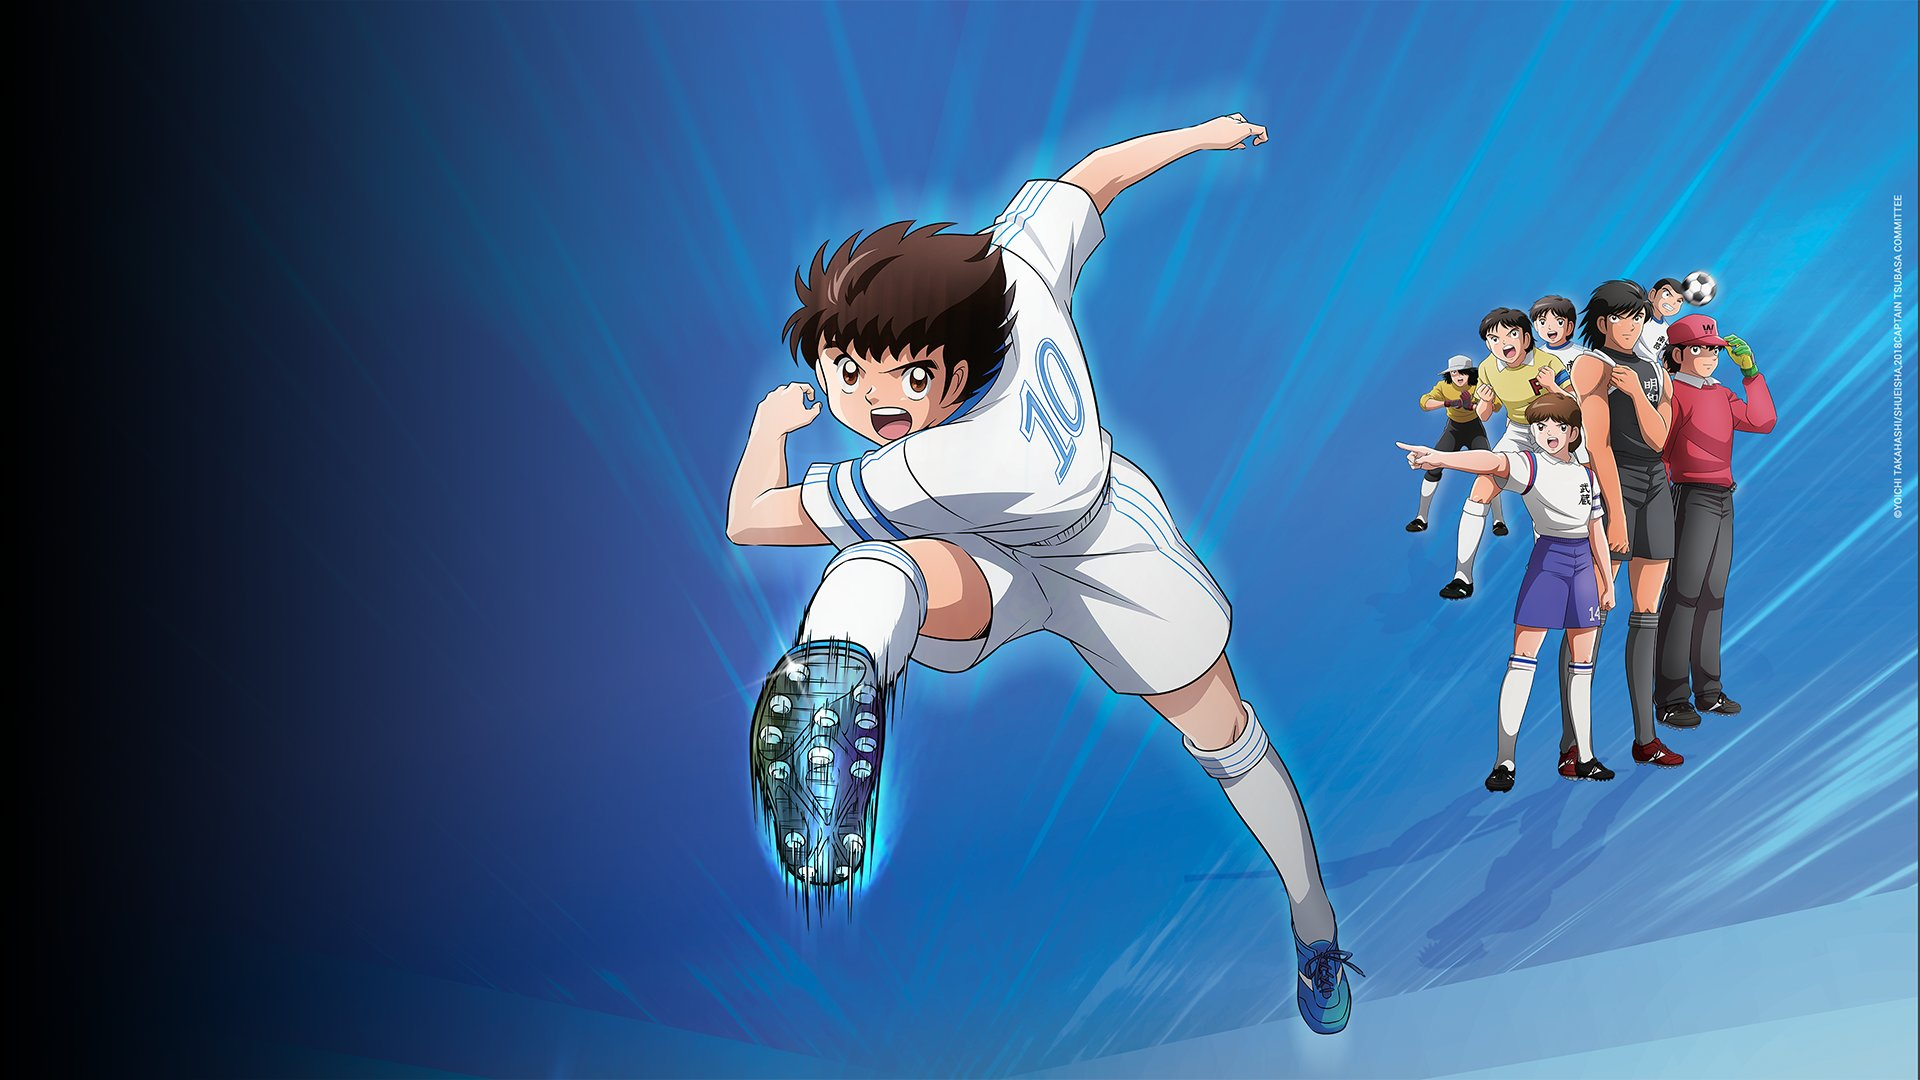 fond Captain Tsubasa - Episode 26 - Le But invalidé